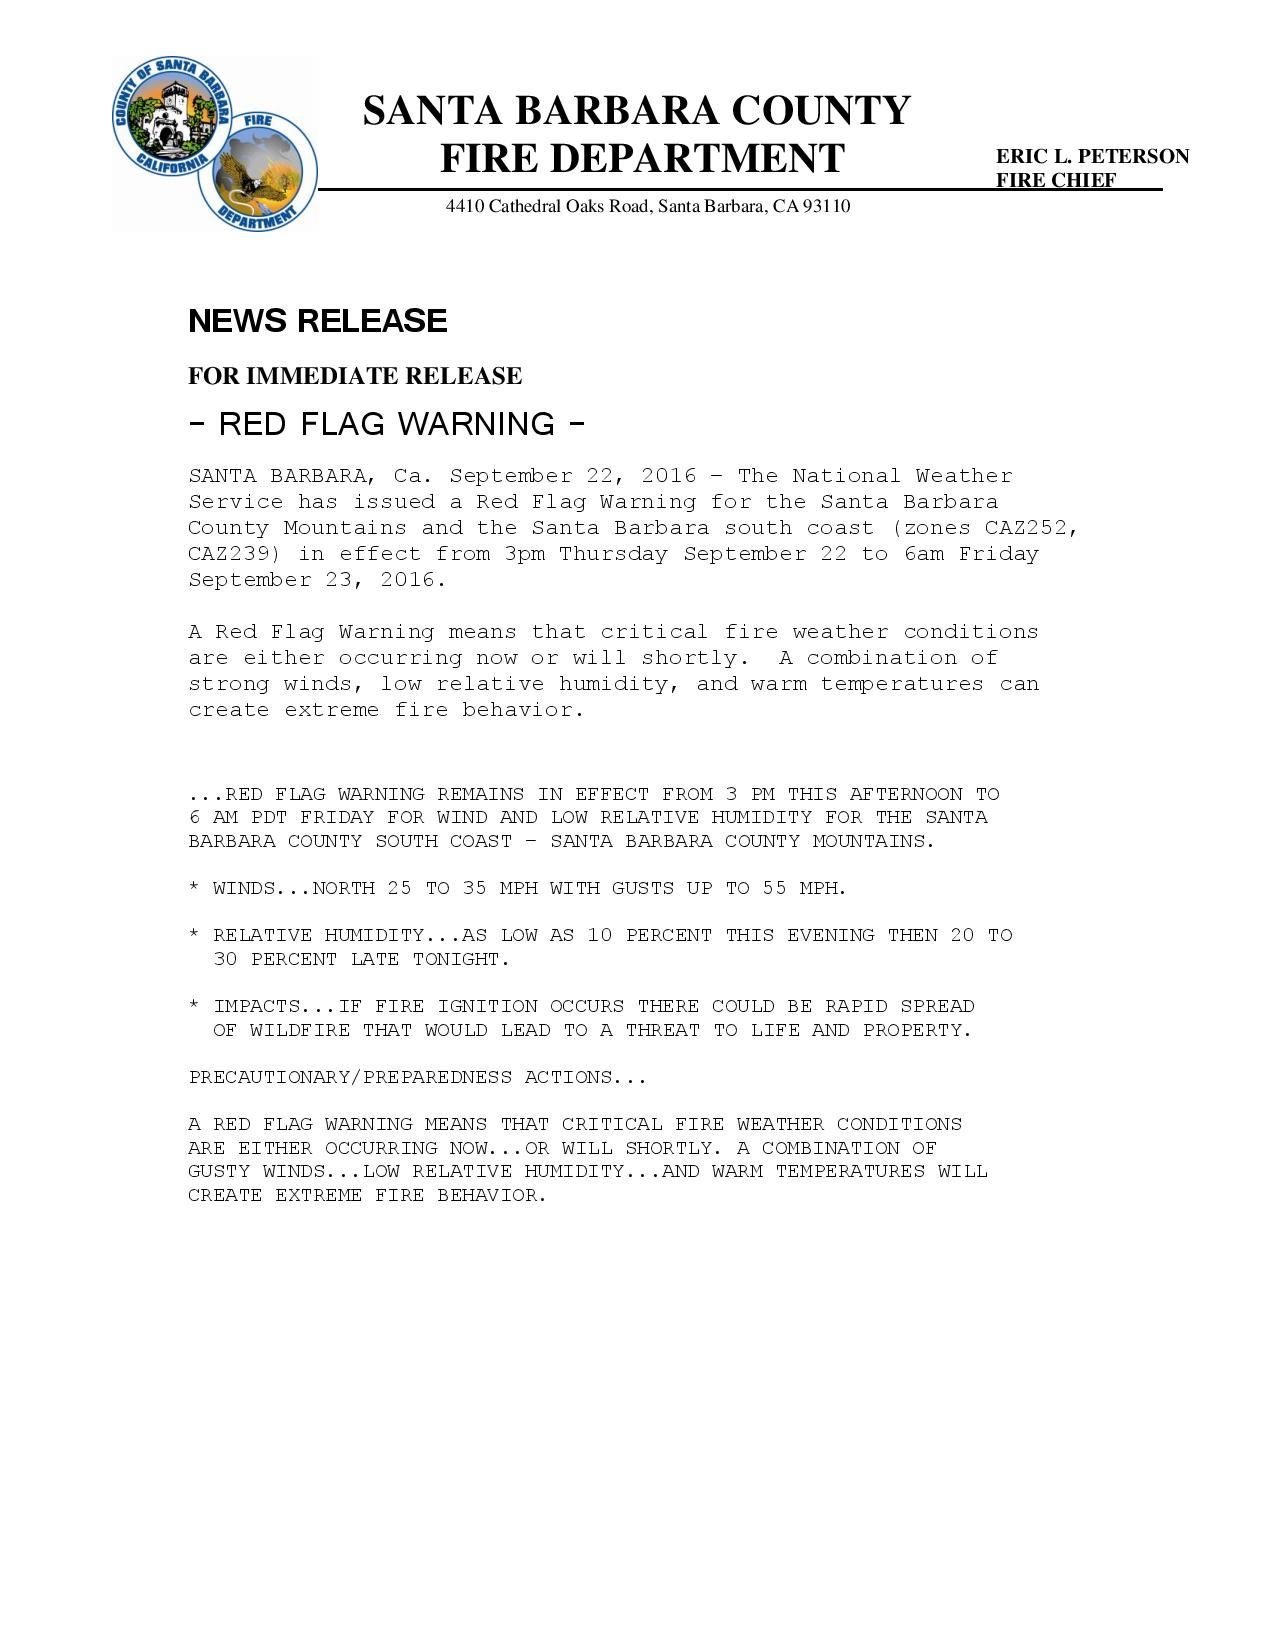 Red Flag Warning-pg1